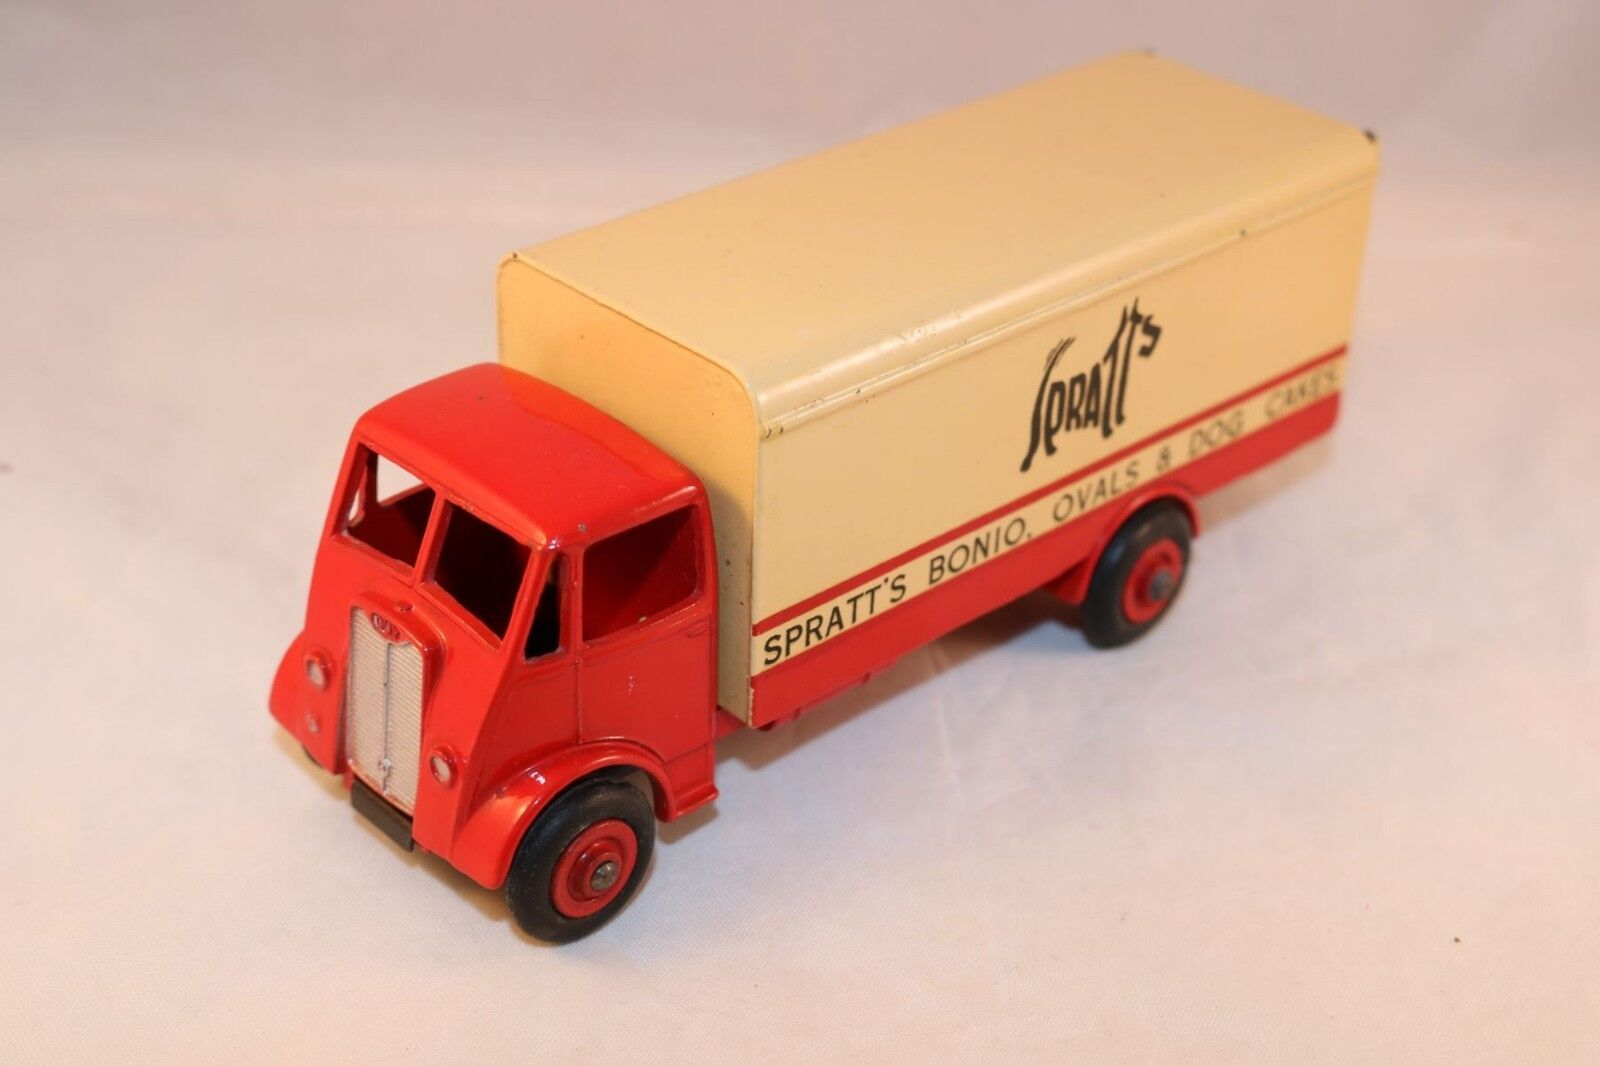 Dinky Toys 917 Guy van Spratts in near mint all original condition